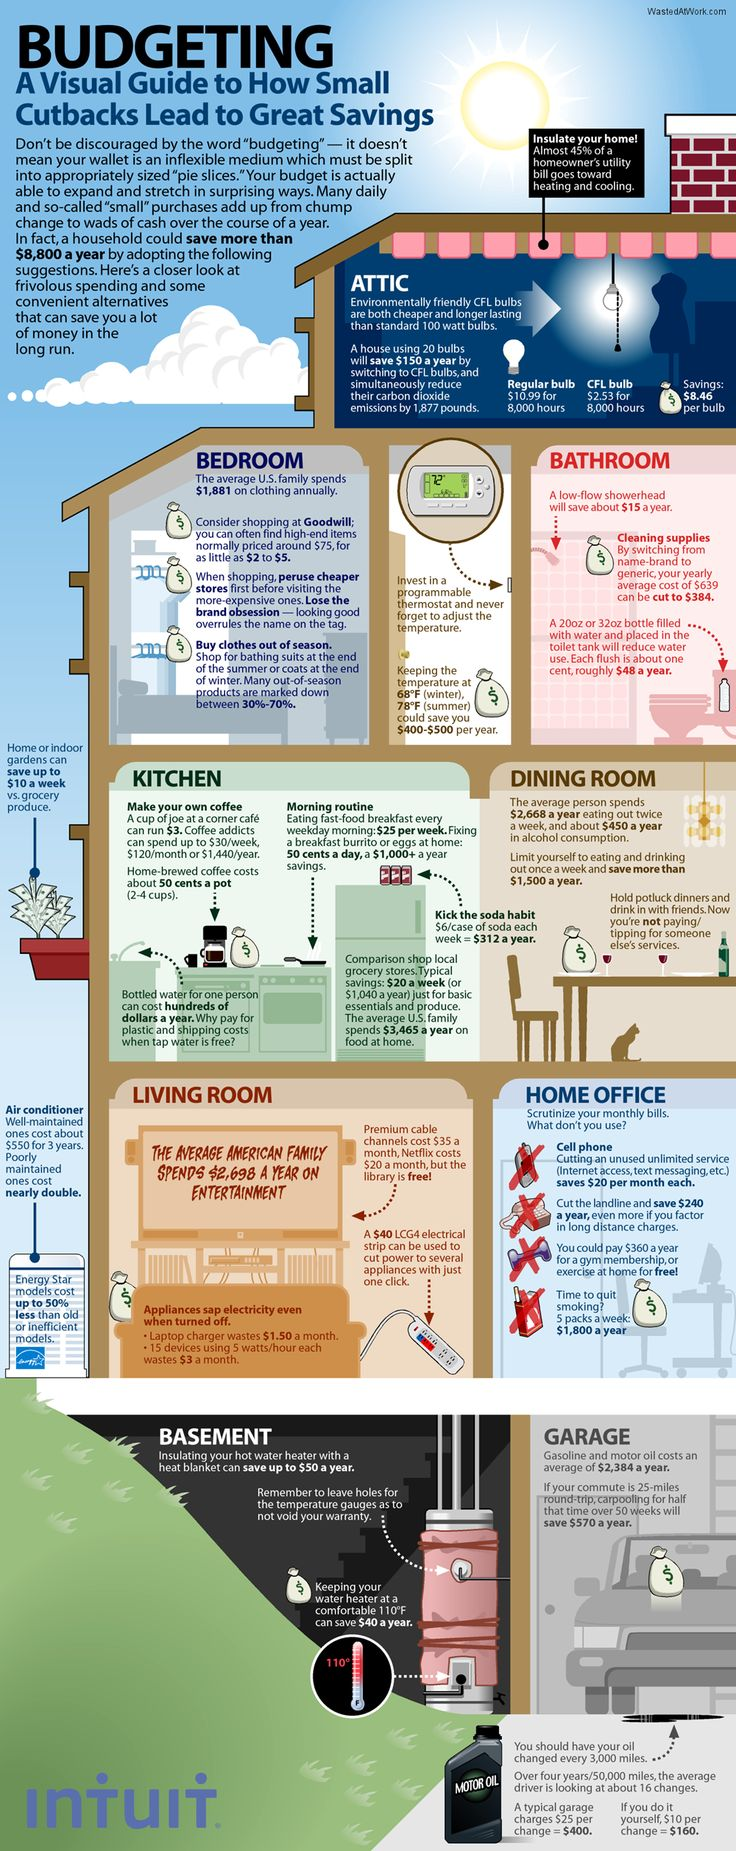 17 Best images about Real Estate Infographics on Pinterest ...